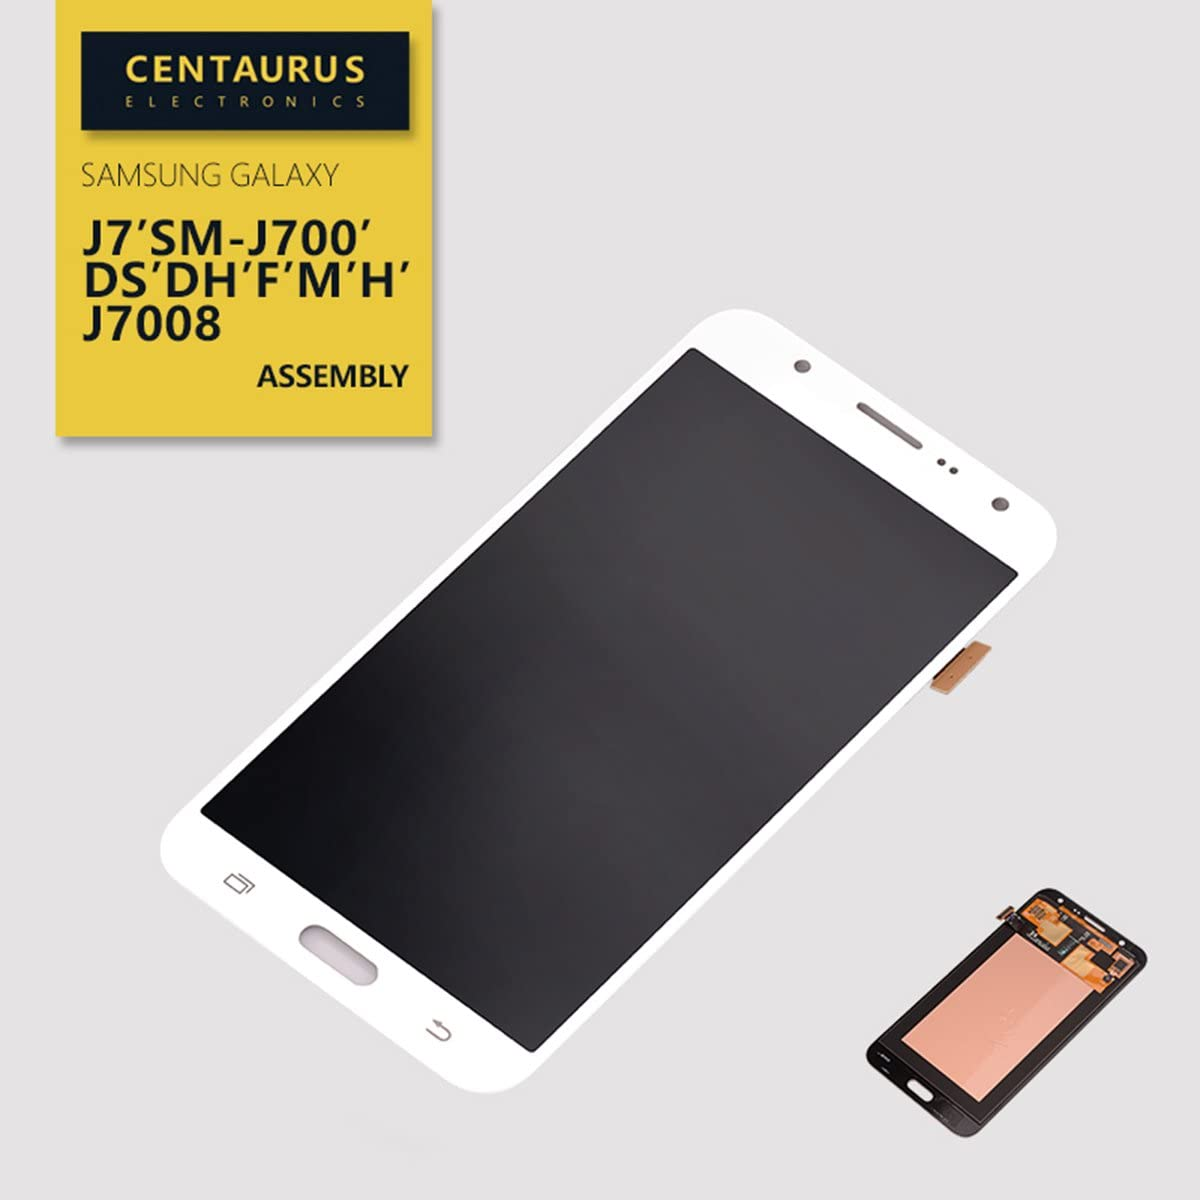 CENTAURUS AMOLED Screen Replacement for Samsung Galaxy J7 2015 SM-J700 J700H J700M J700DS J700F J700T J700P J7008 J700DS J700DH 5.5 inch LCD Display Touch Screen Digitizer Assembly Part Repair (White)